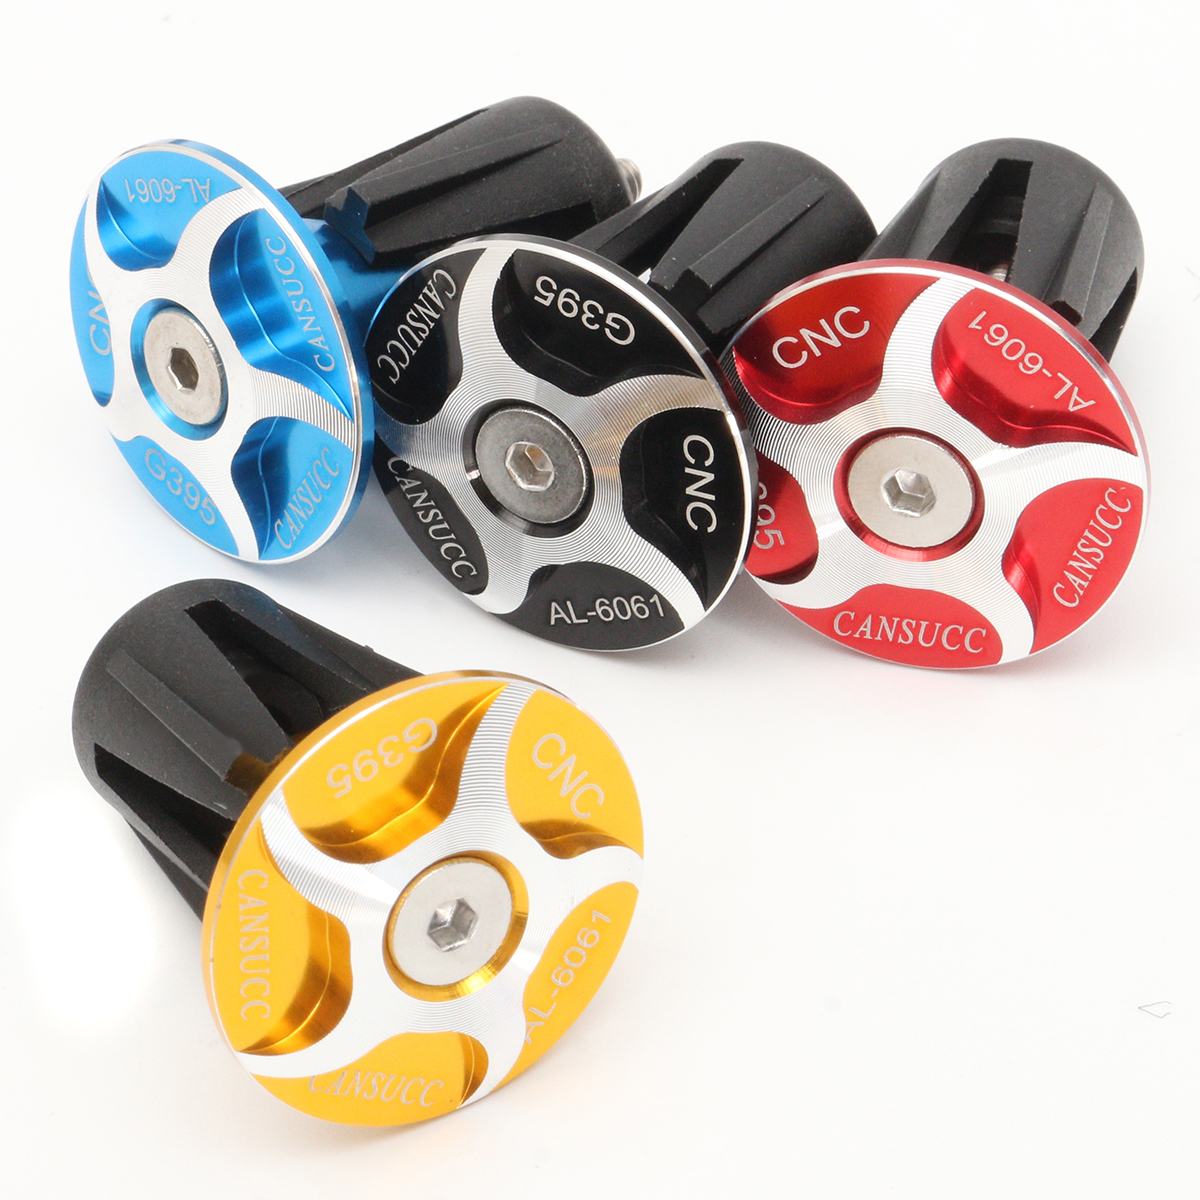 BIKIGHT CNC Aluminum Handlebar Grips Bar End Plug Cap MTB Mountain Bike Accessories